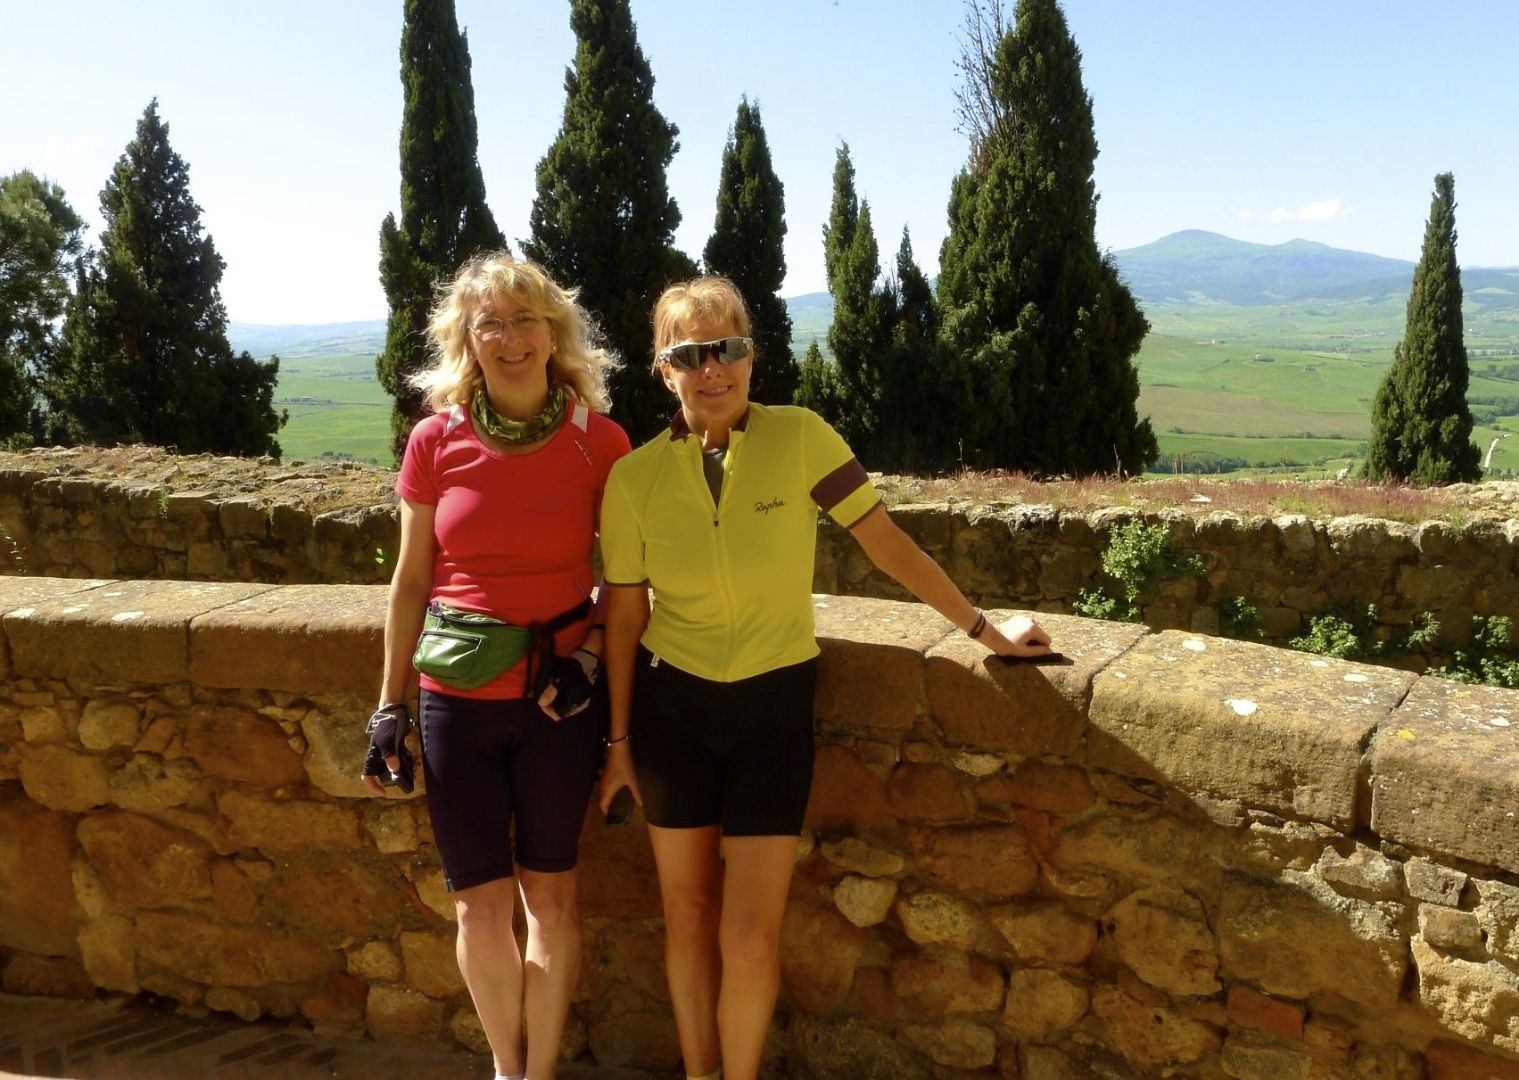 hfh cycling holiday tuscany1.jpg - Italy - Classic Tuscany - Self-Guided Leisure Cycling Holiday - Italia Leisure and Family Cycling